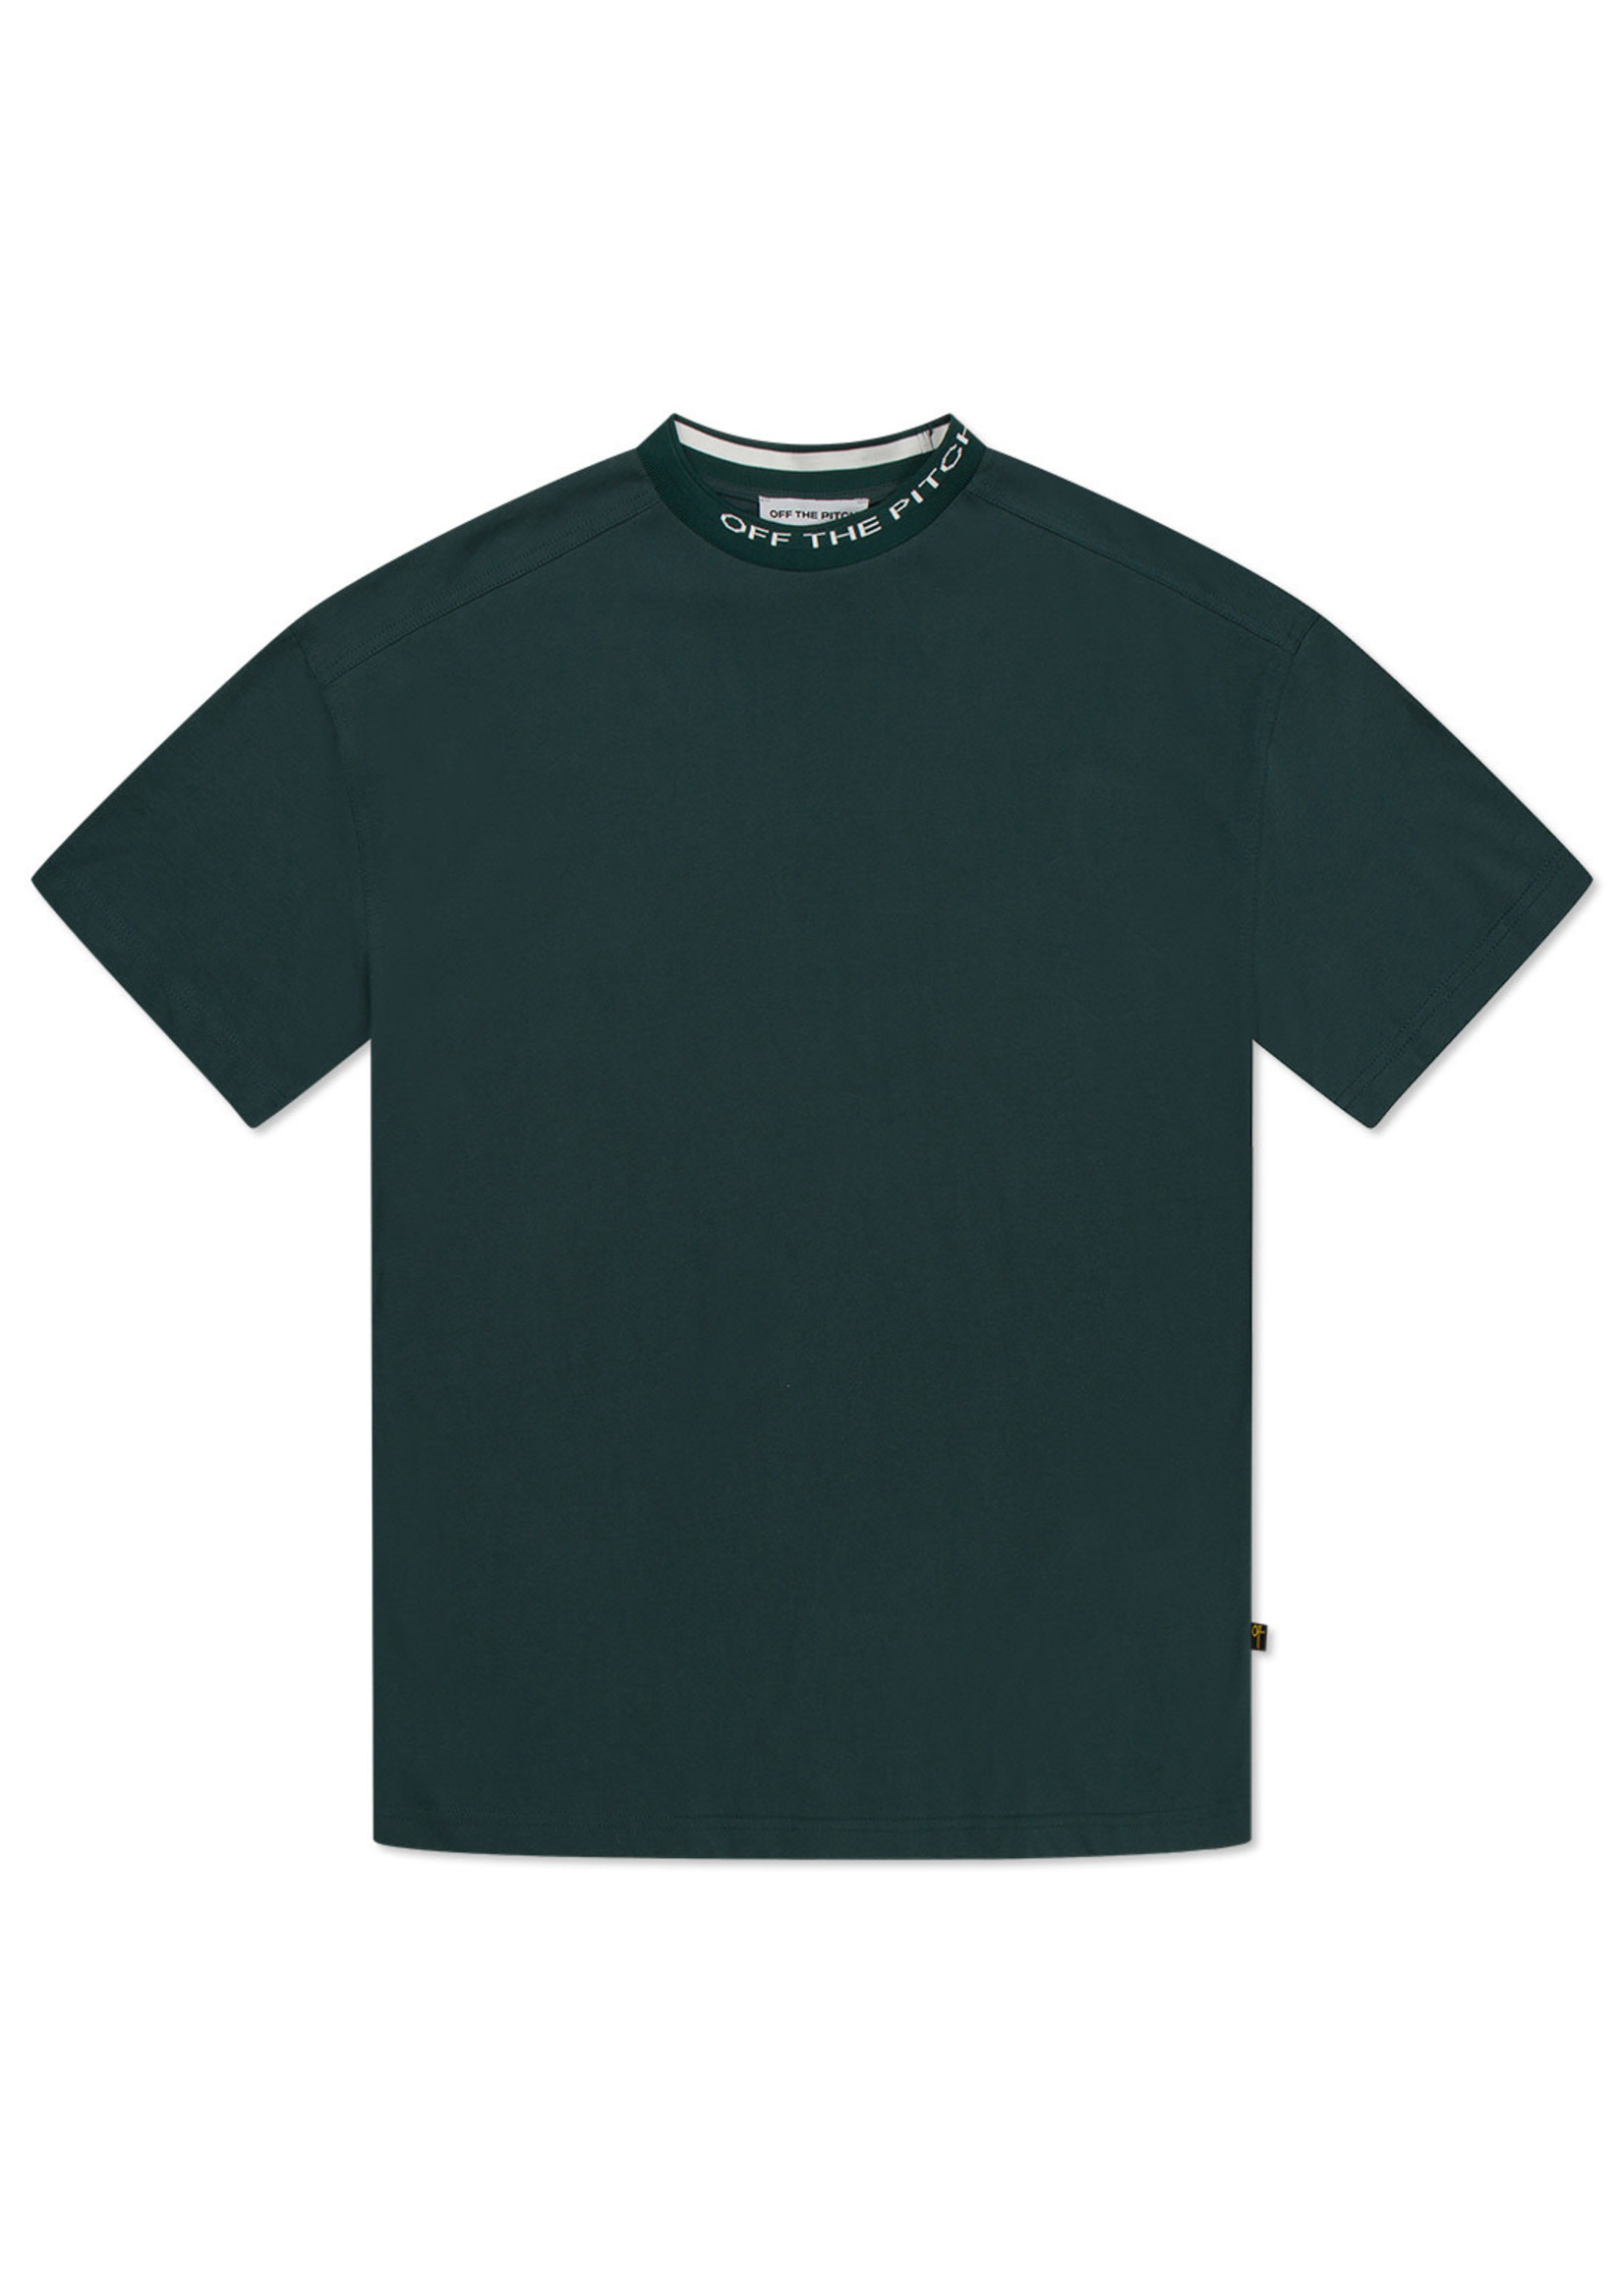 OFF THE PITCH Off The Pitch The Orphan Tee - Dark Green